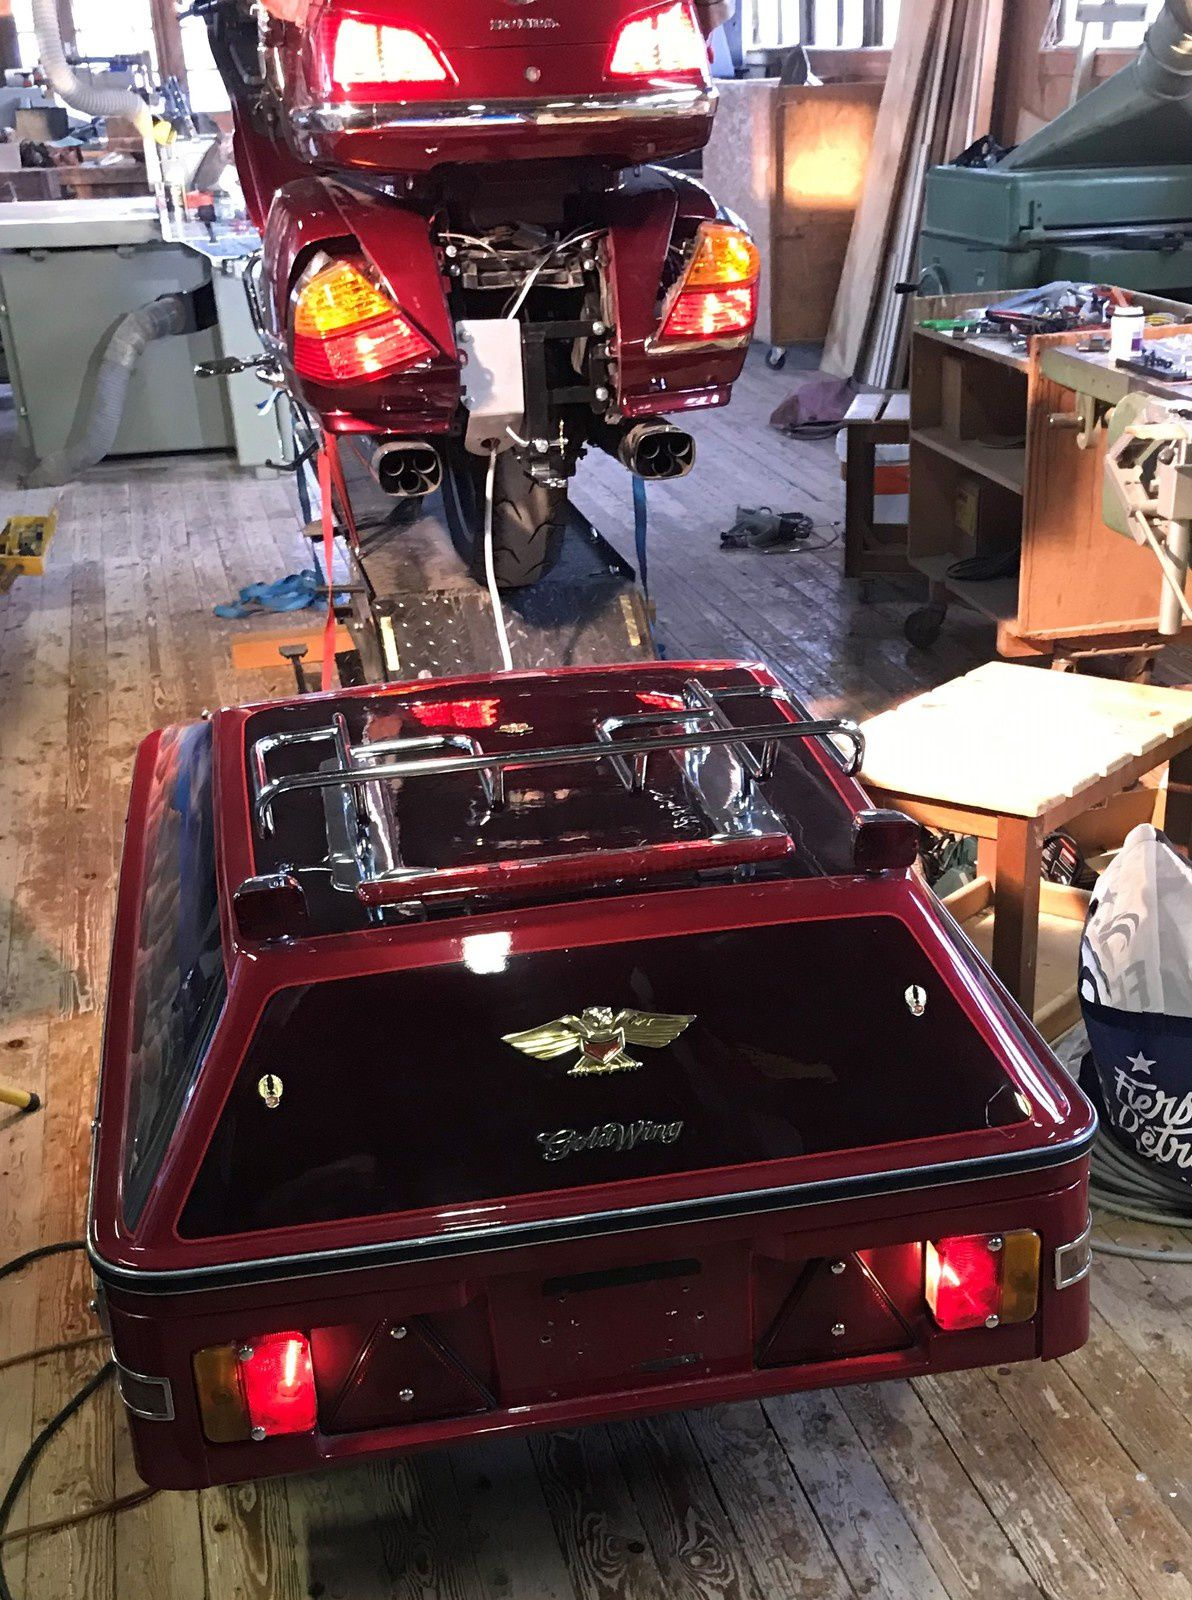 Goldwing 1800 - installation d'une attache remorque 45-1806 (Gold 2002)